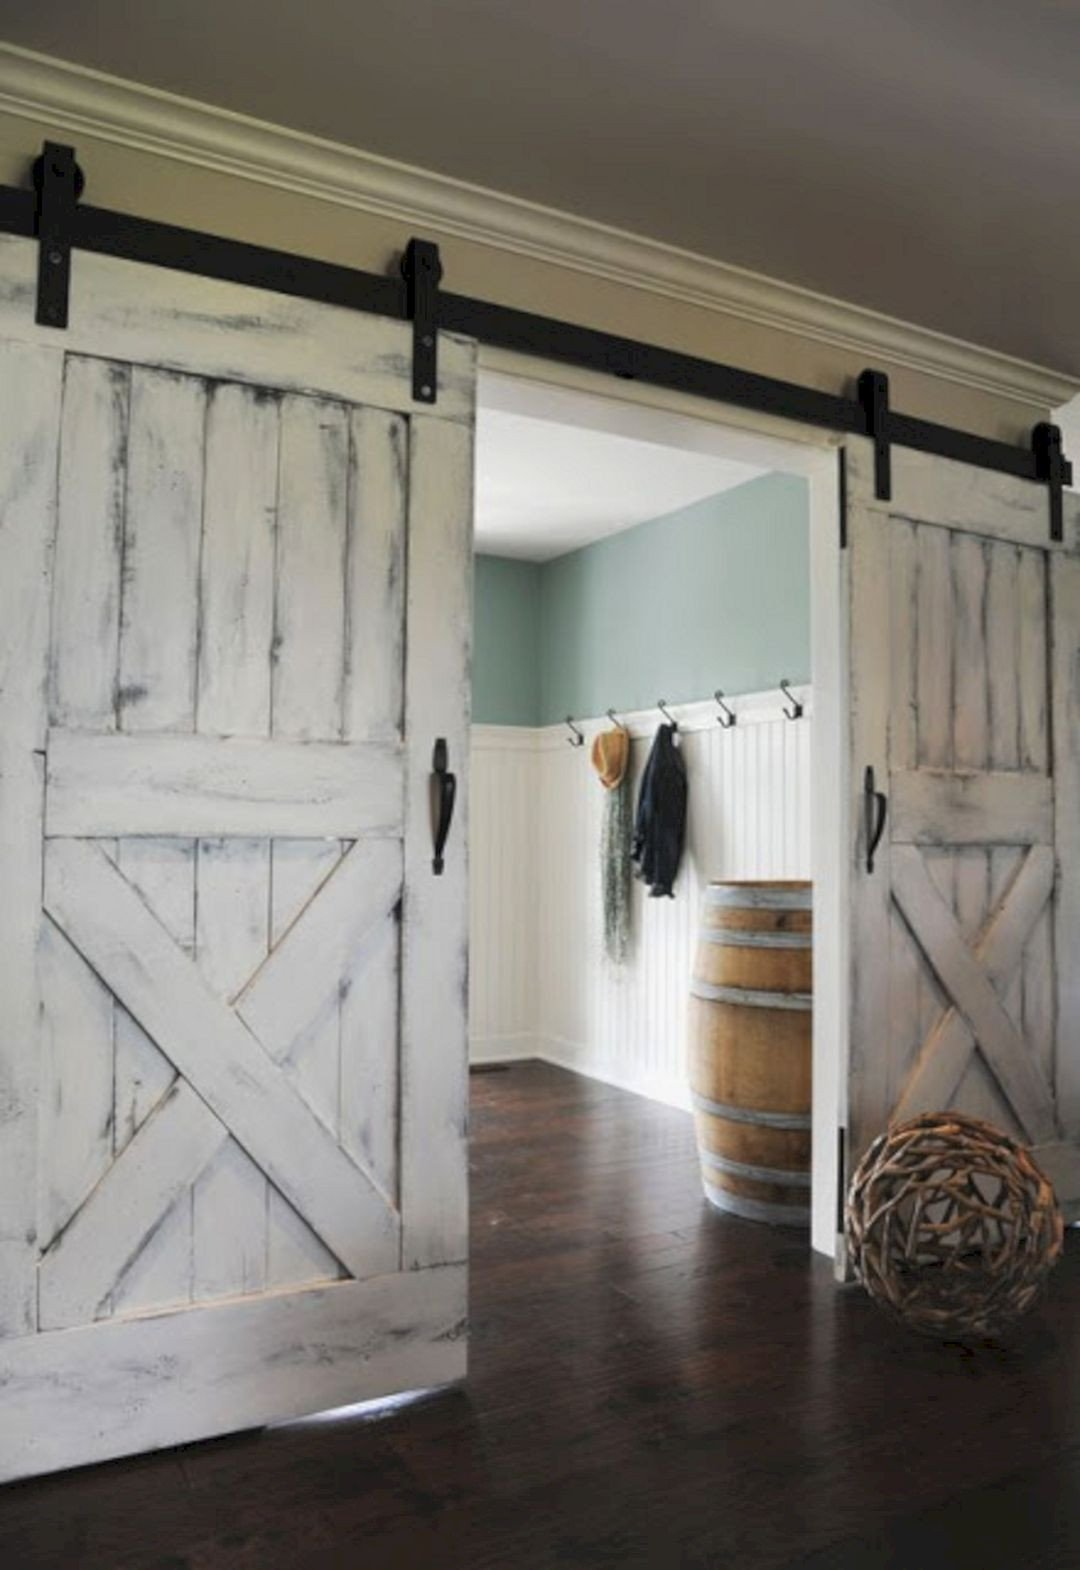 Sliding Barn Door for Bedroom Inspirational Pin by Car❤lore On Home Sweet Home